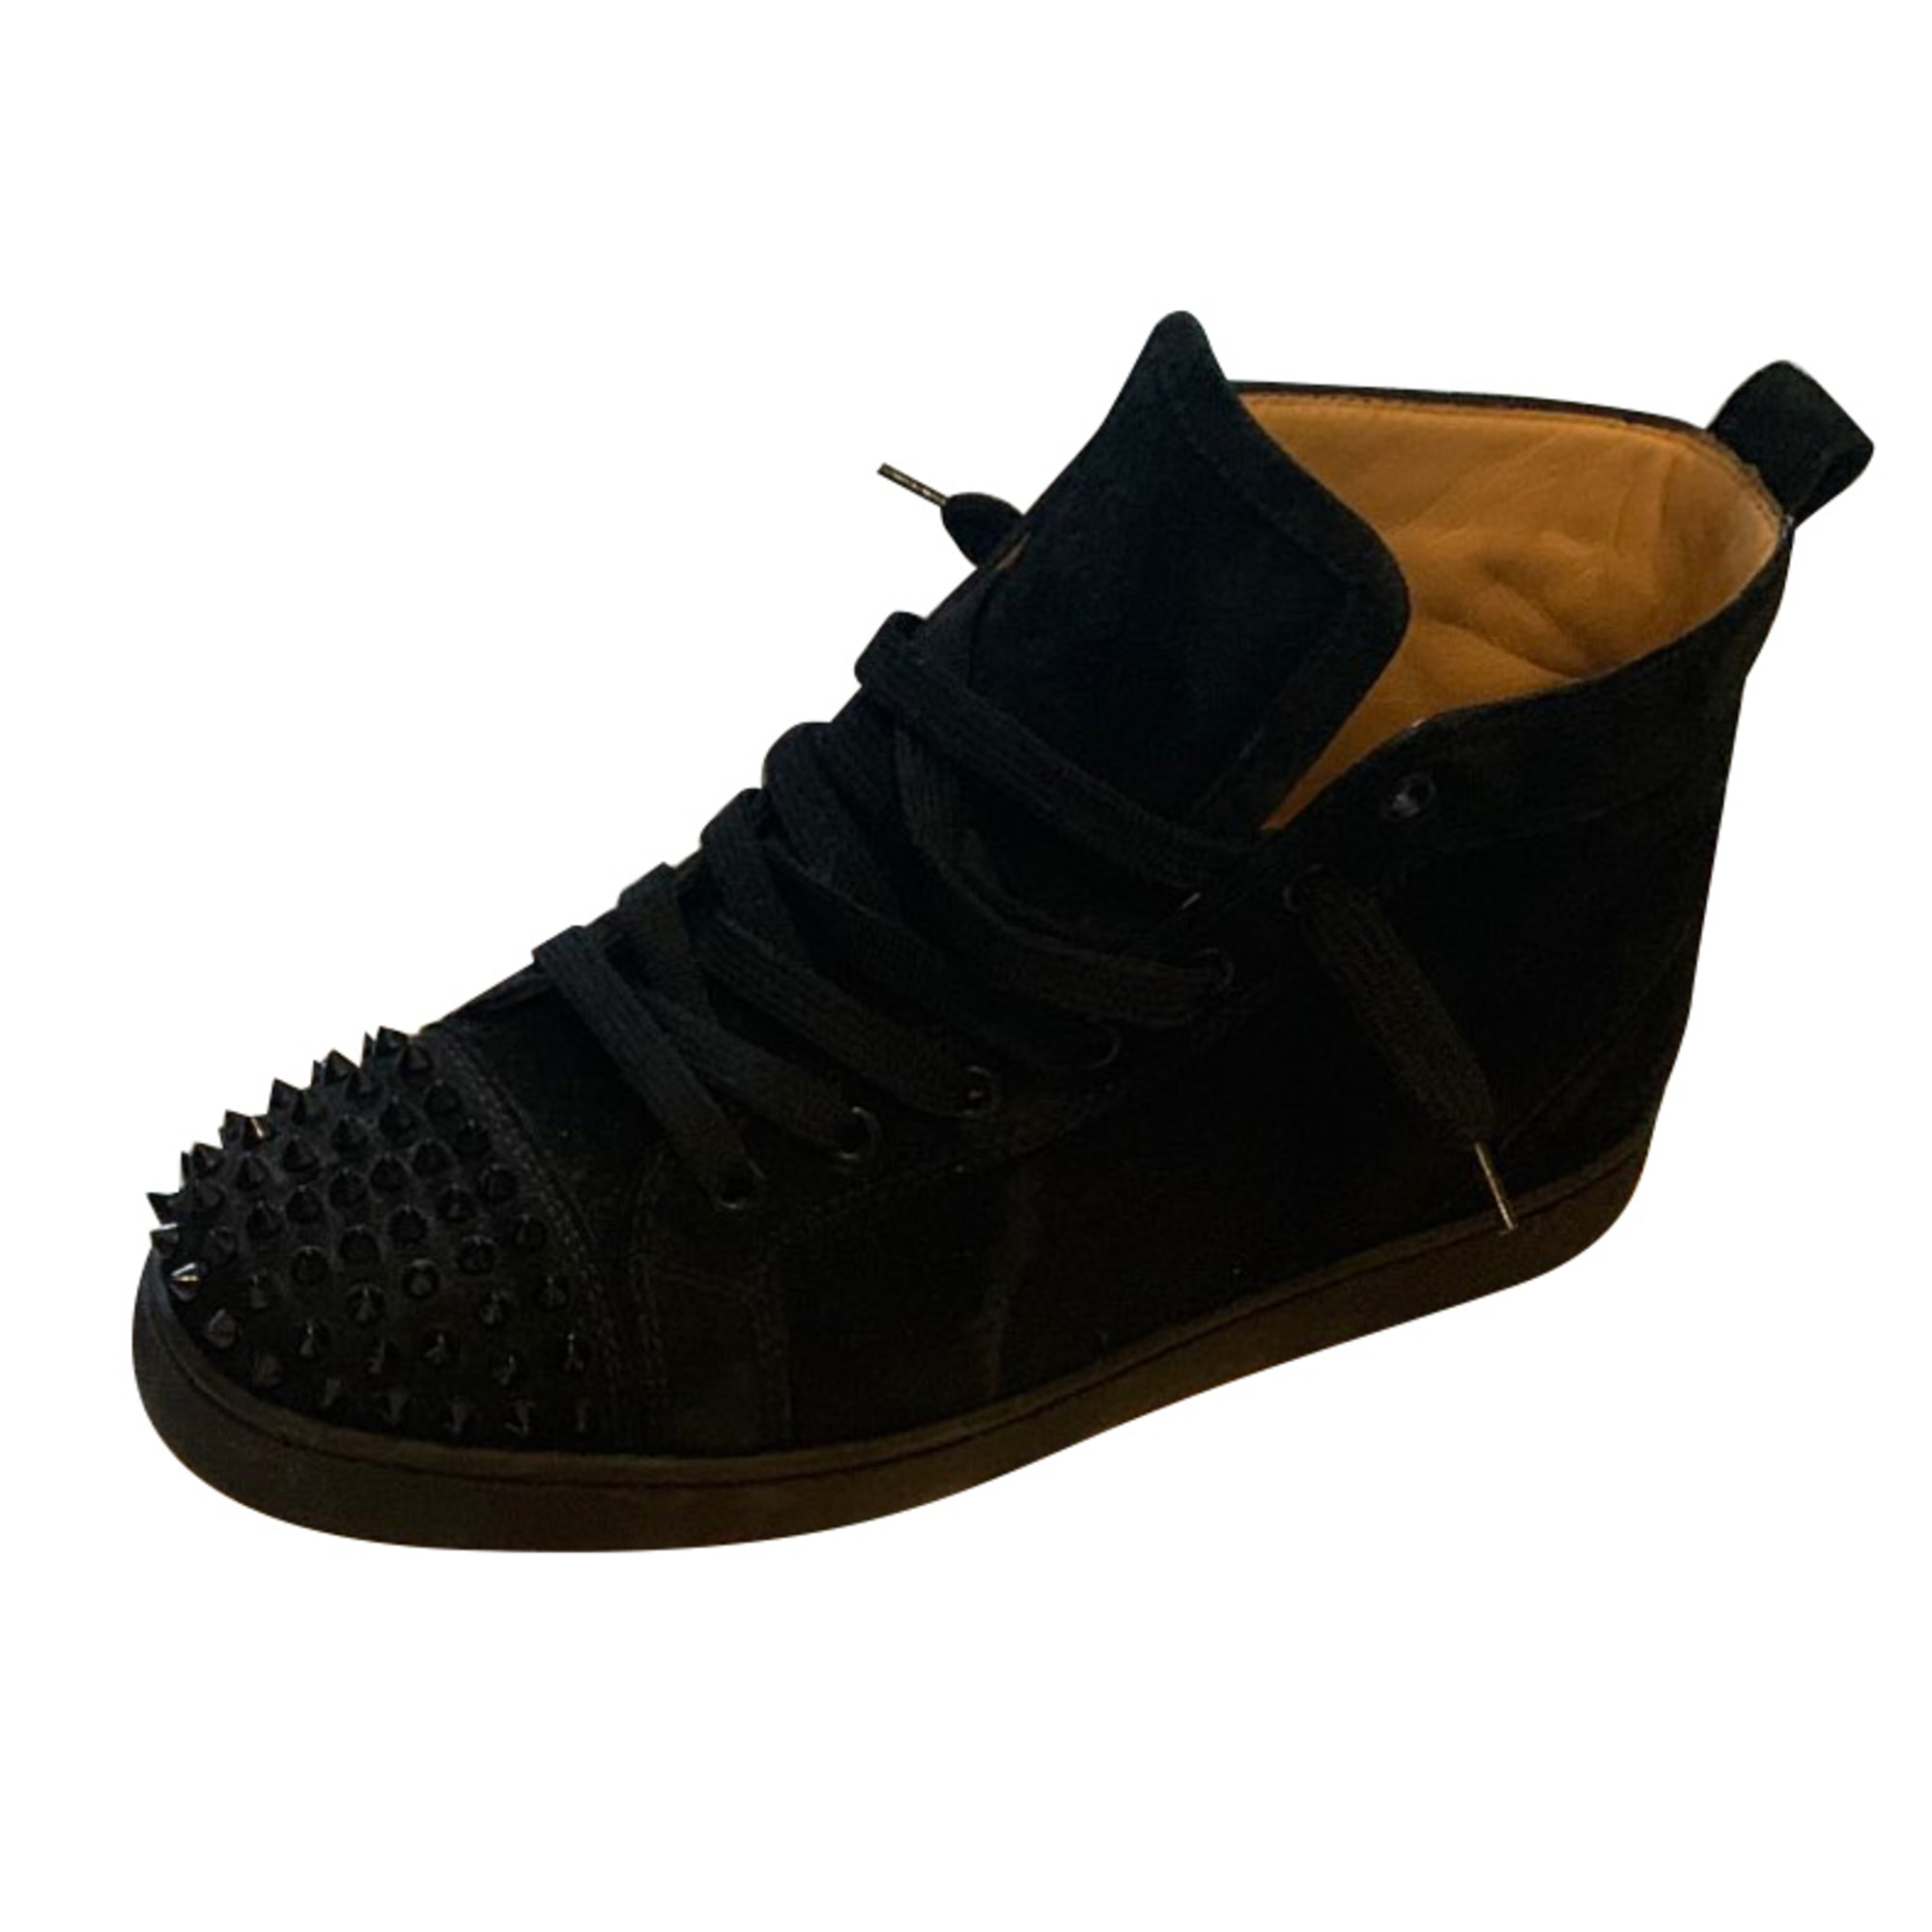 Lace Up Shoes CHRISTIAN LOUBOUTIN Black